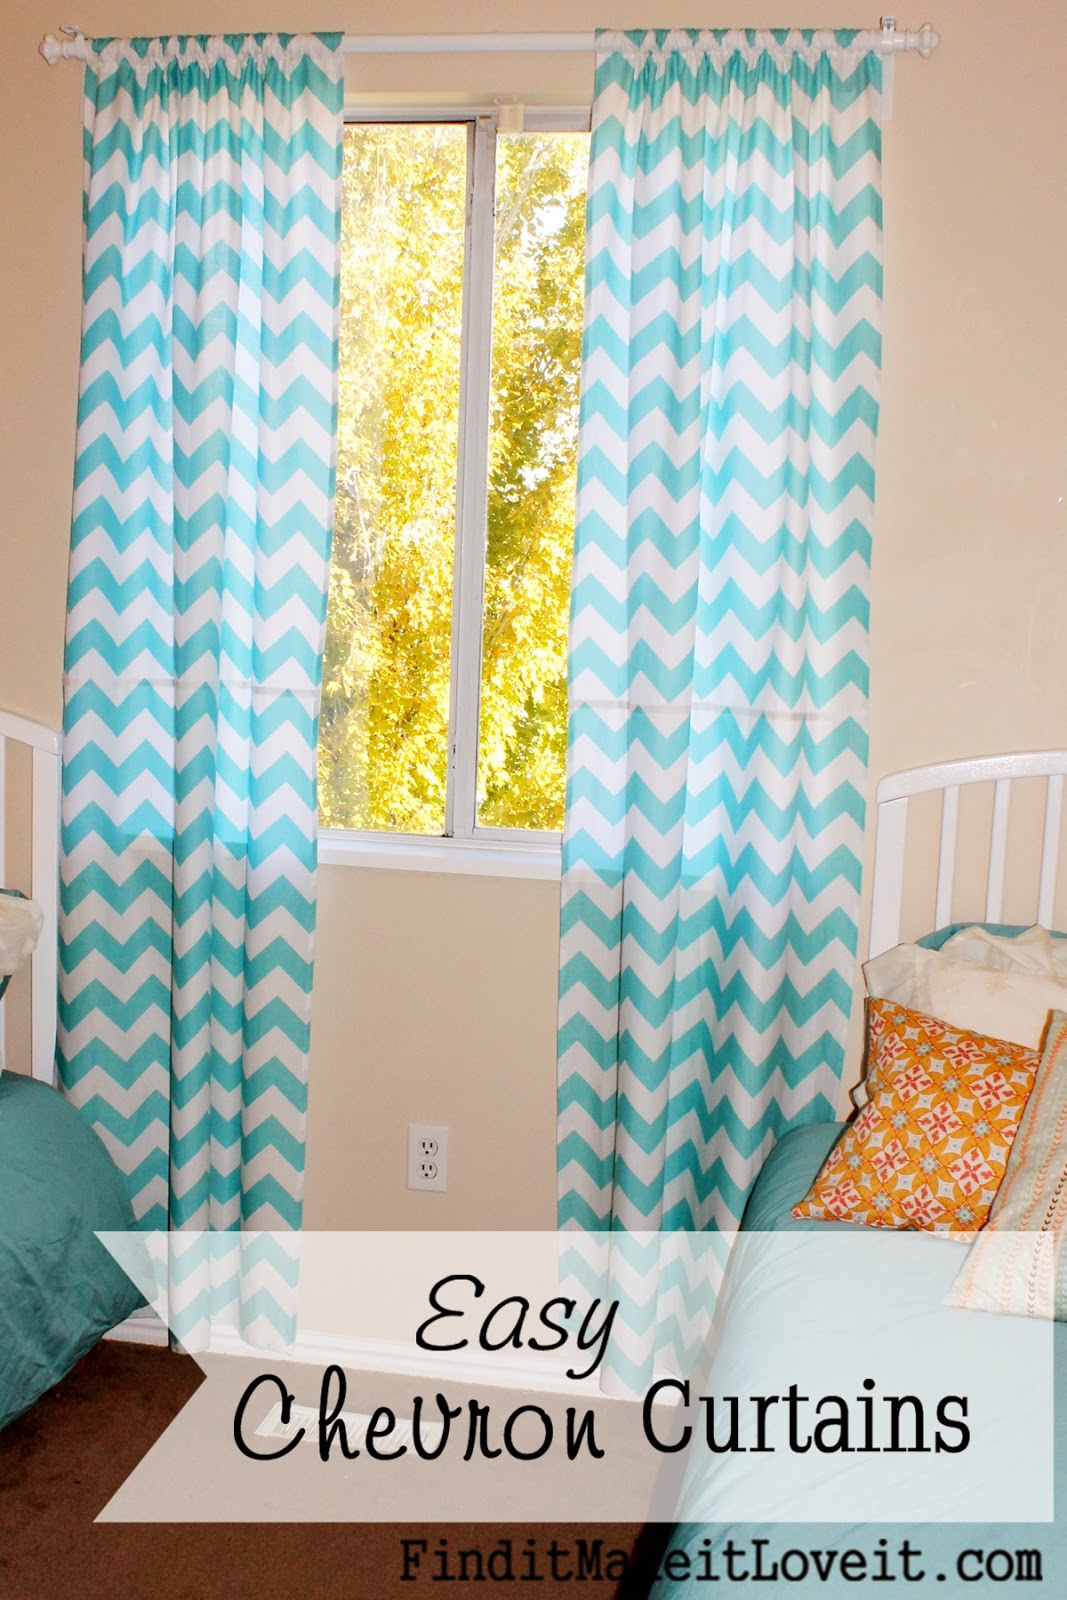 chevron curtains the first step of sewing up some curtains is to measure your window. WDFWLZG